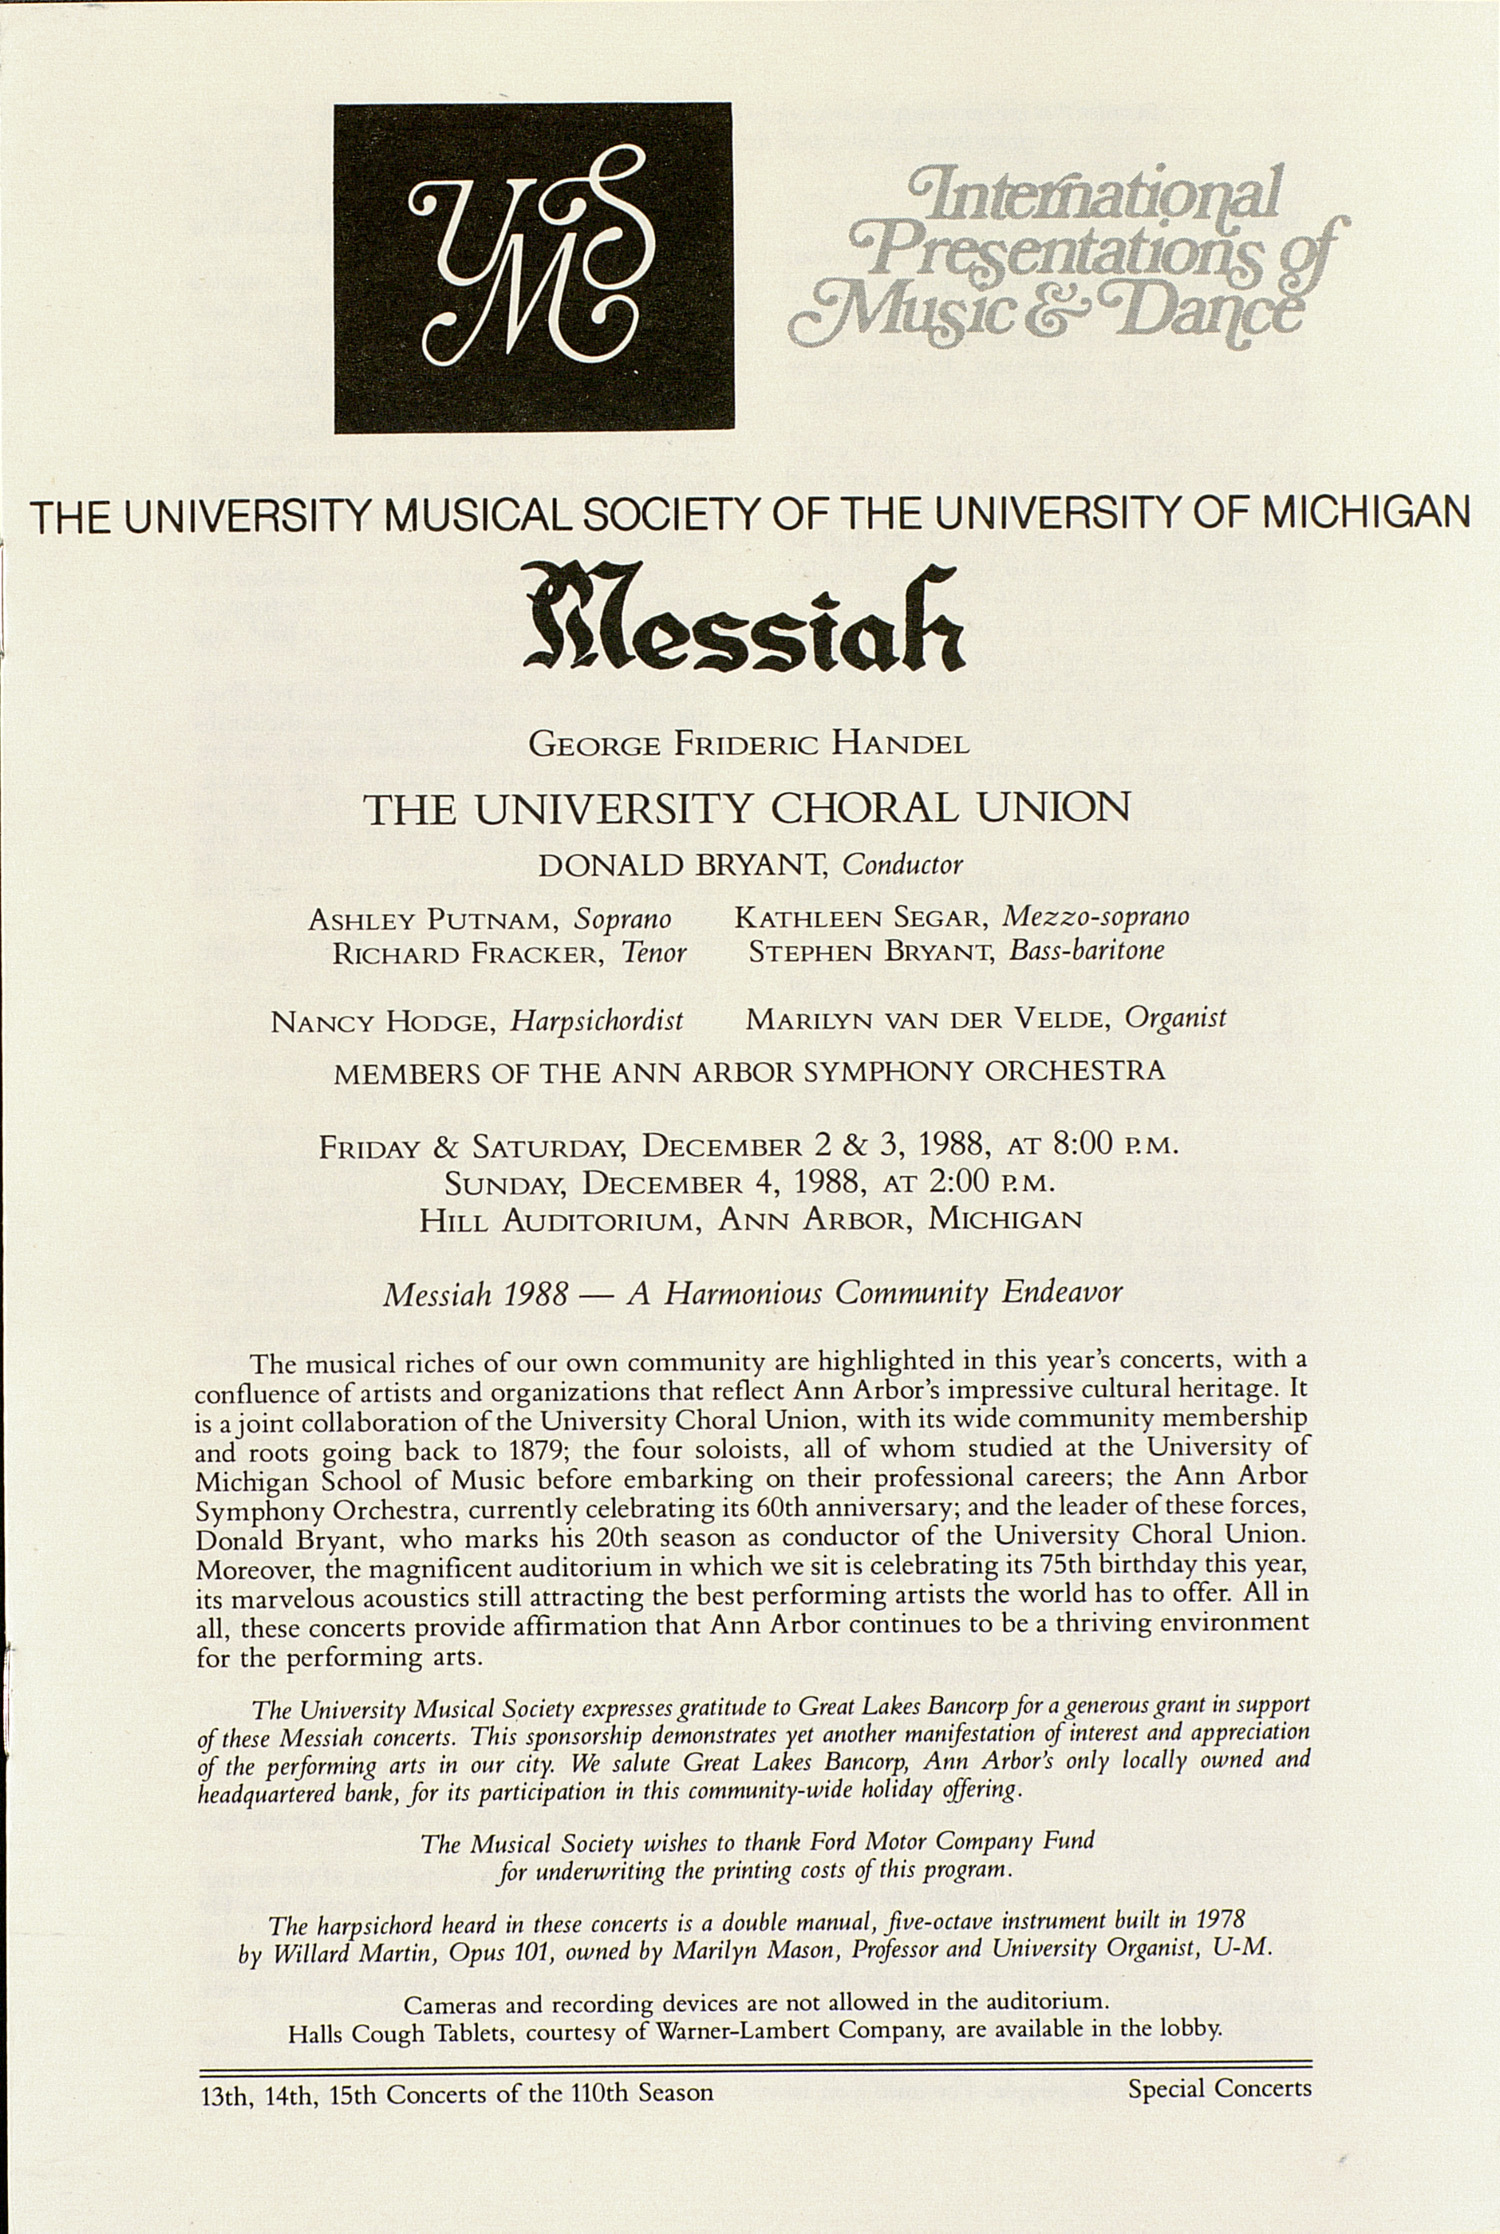 UMS Concert Program, December 2-4, 1988: Messiah -- George Frideric Handel image